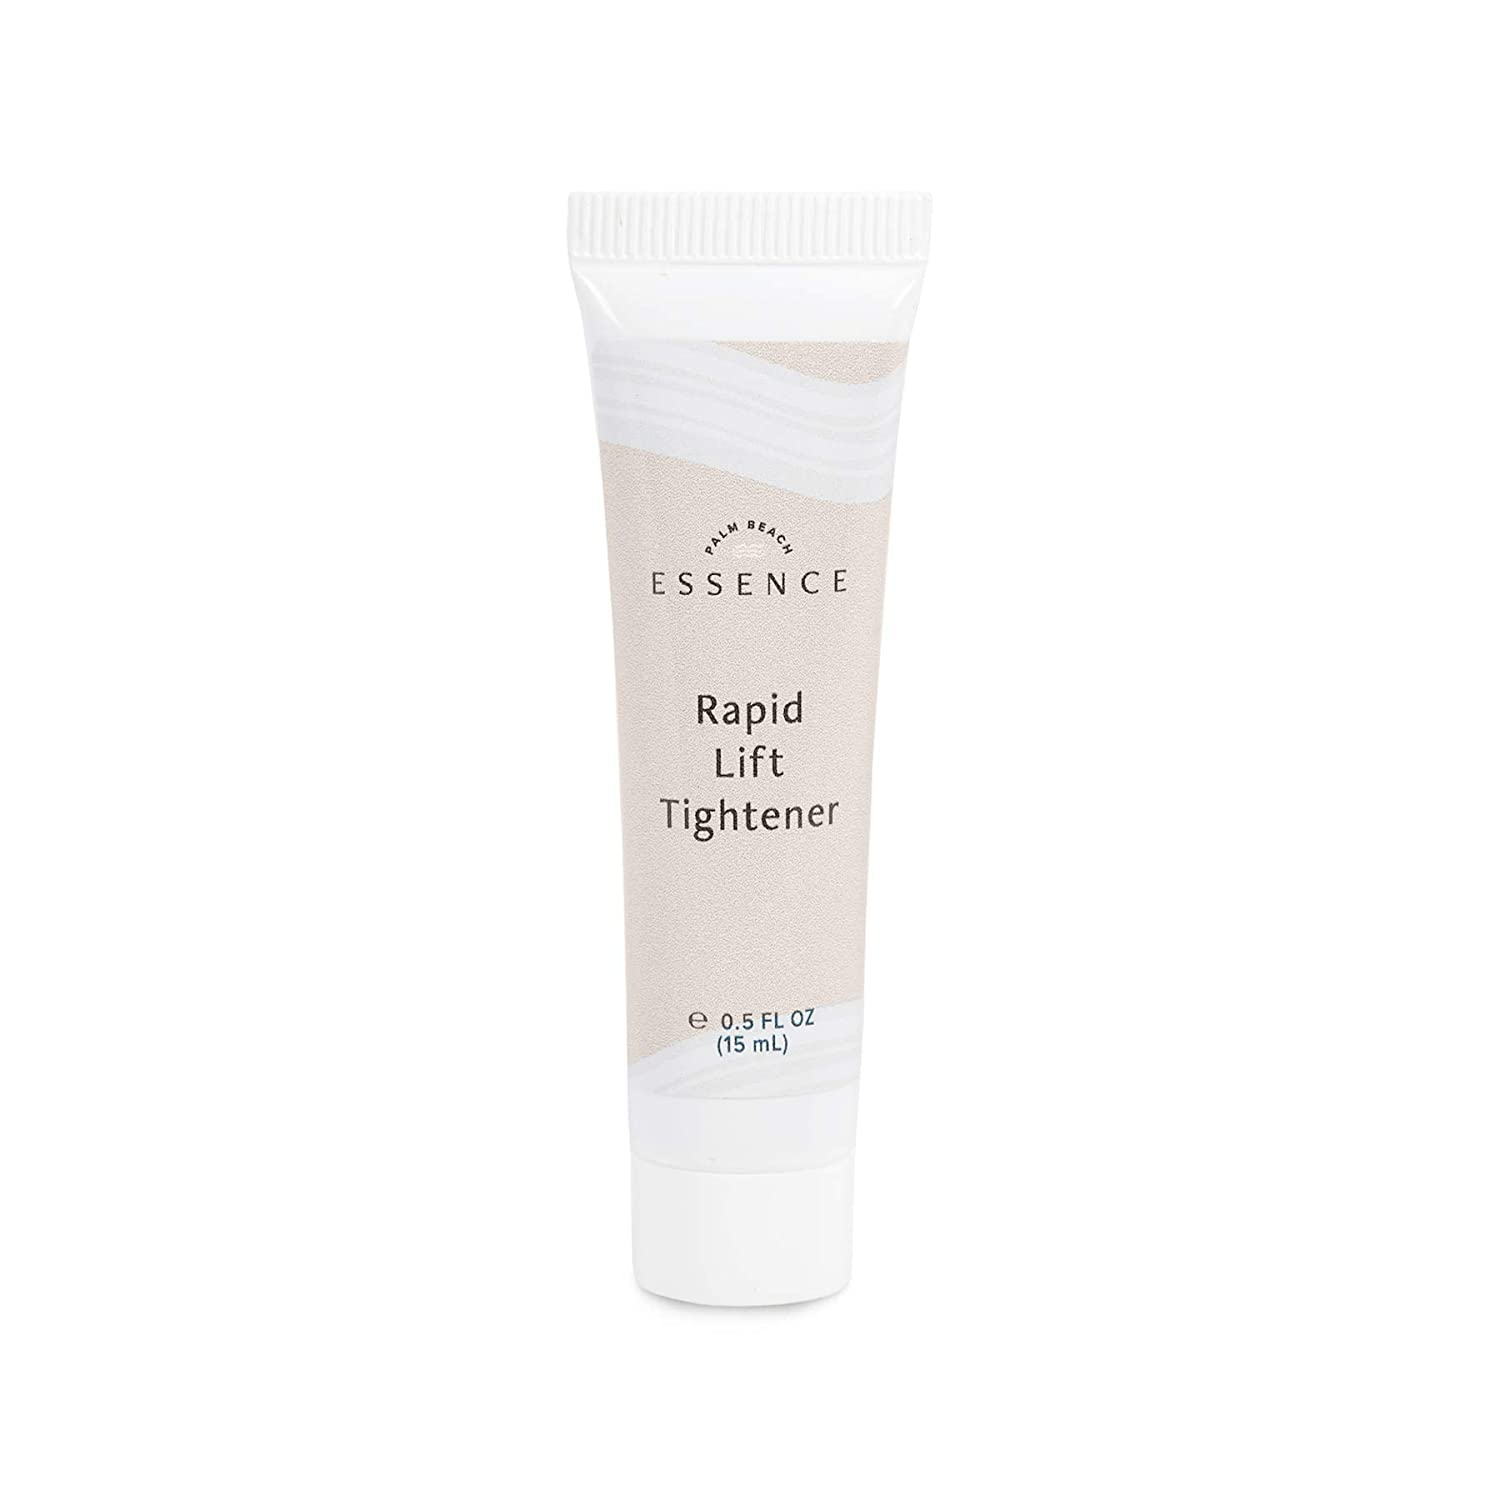 Rapid Lift Tightener, Instantly smooths the appearance of fine lines, Lifts and tightens, Sculpts facial contours, 15ml tube